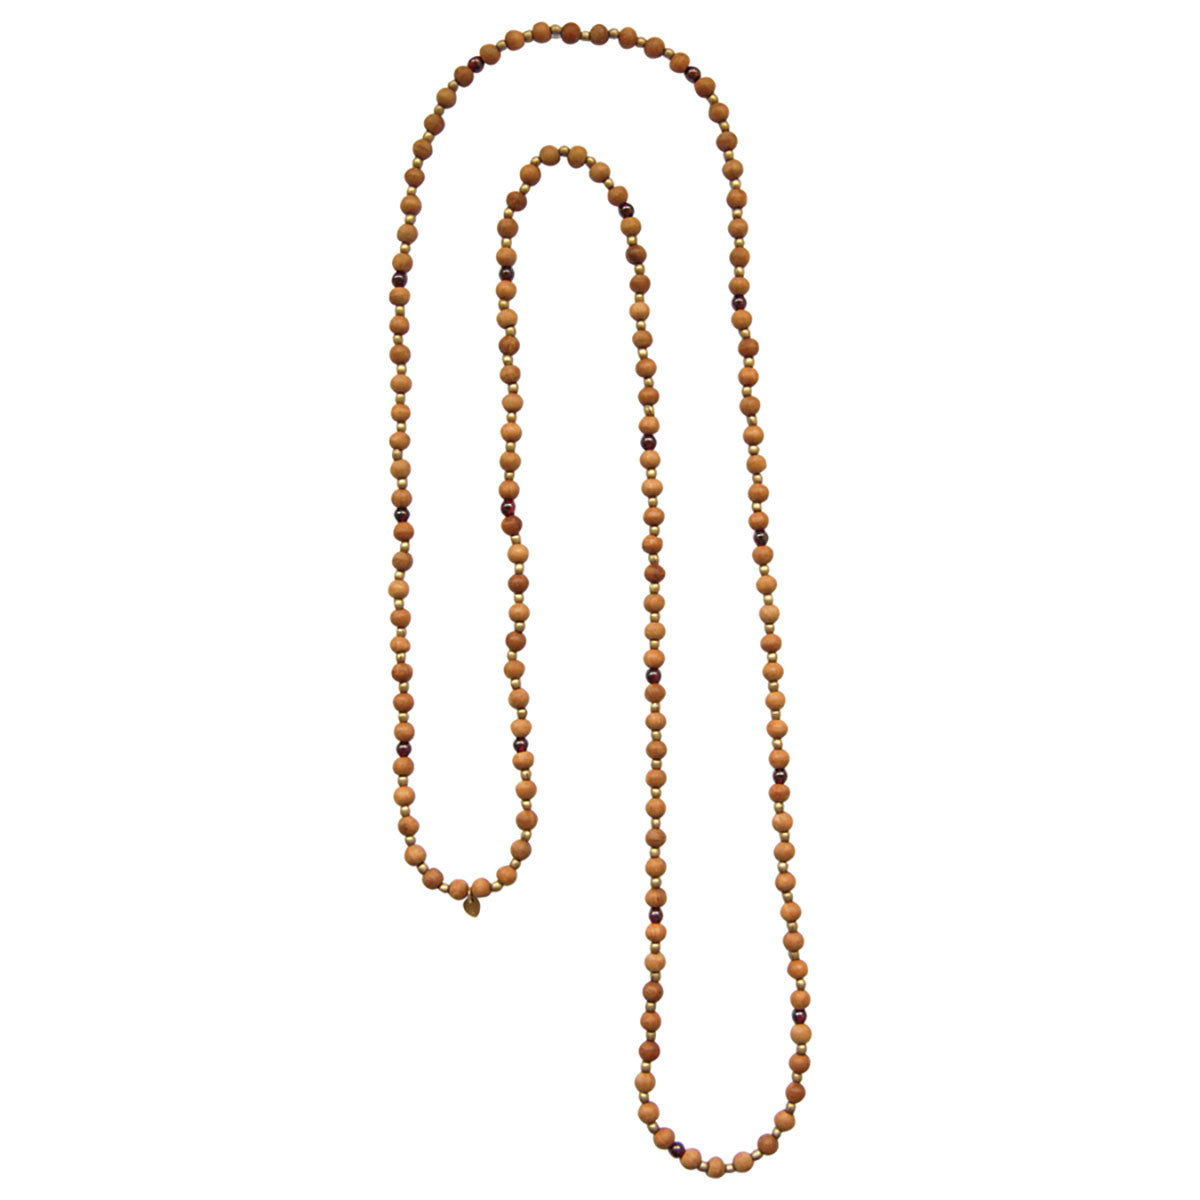 Mala ketting from Sophie Stone